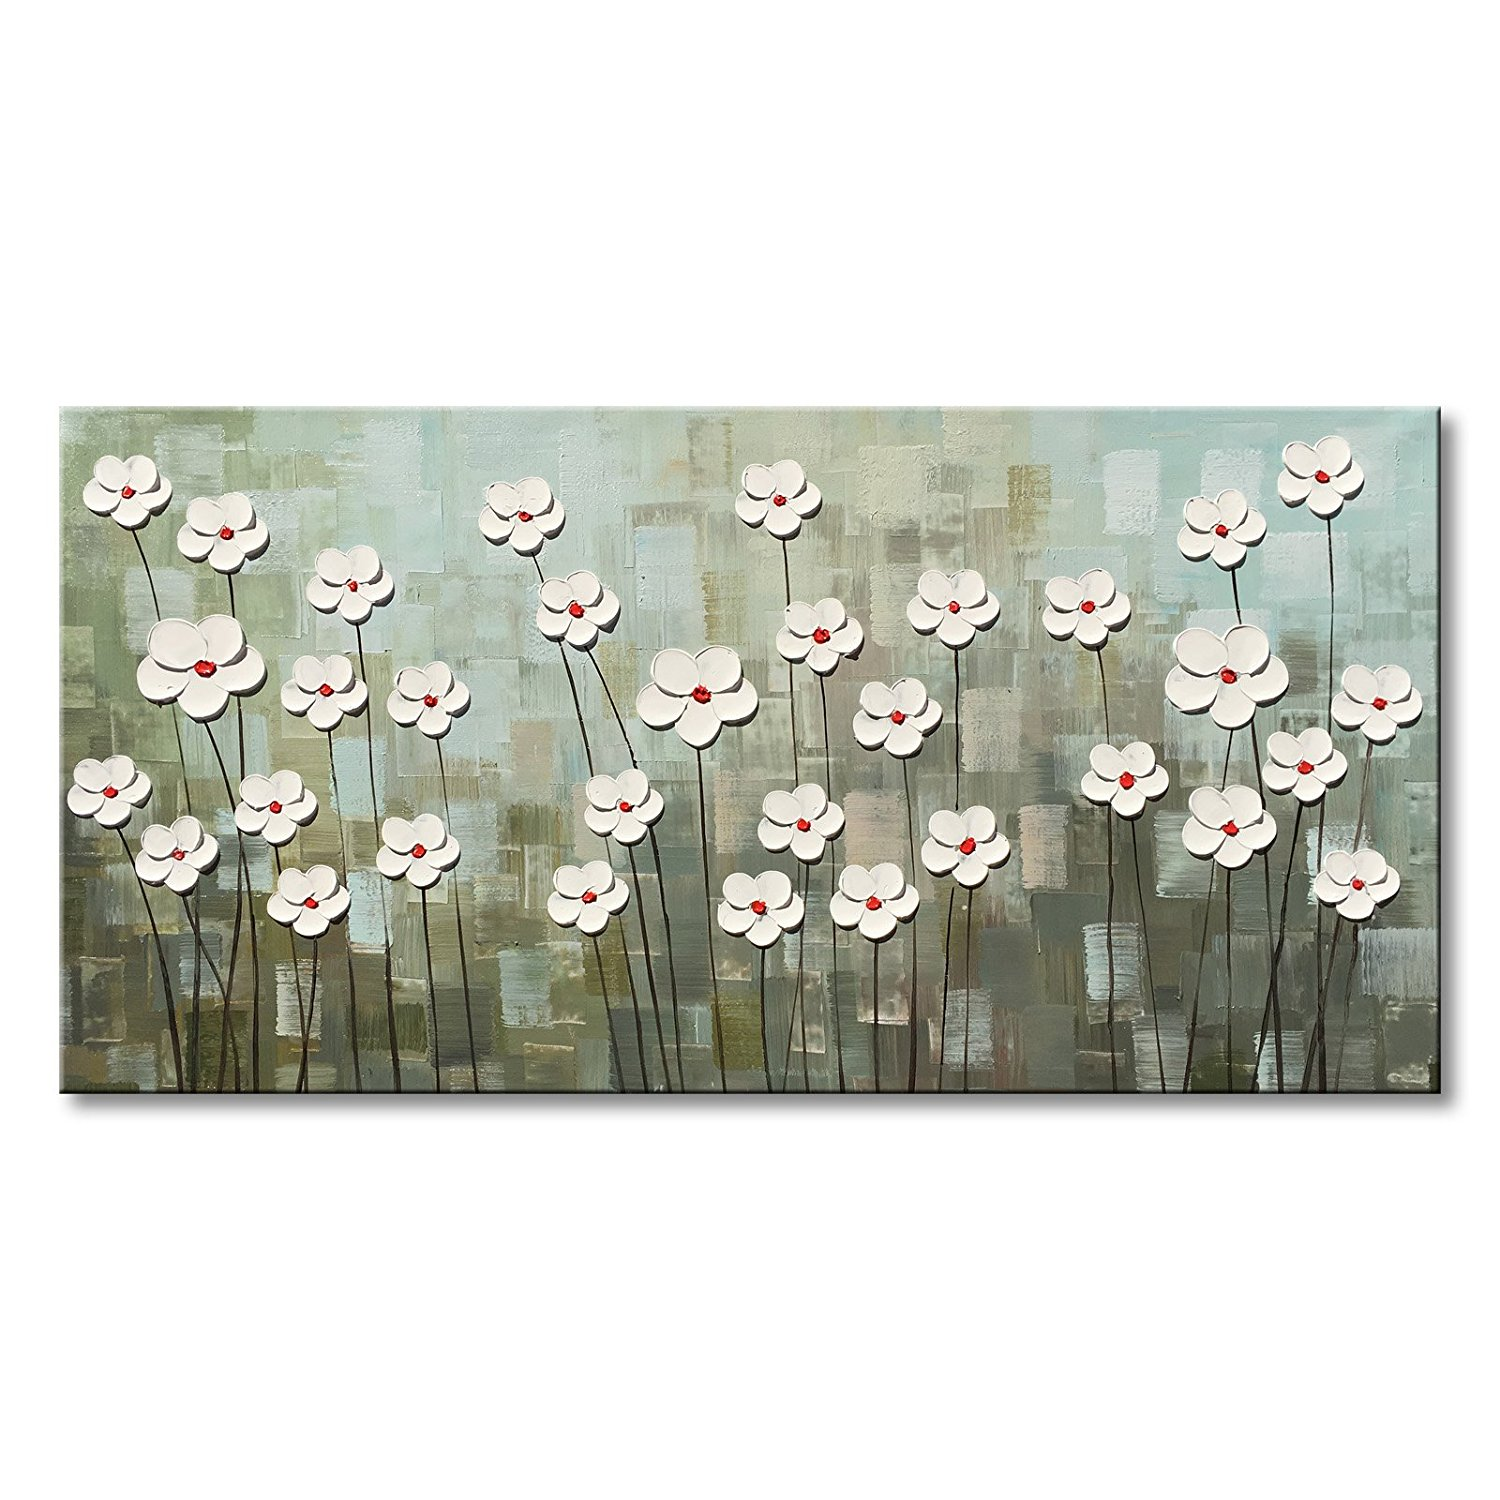 Hand Painted Textured Abstract Canvas Wall Art White Flower Oil Painting Modern Floral Artwork